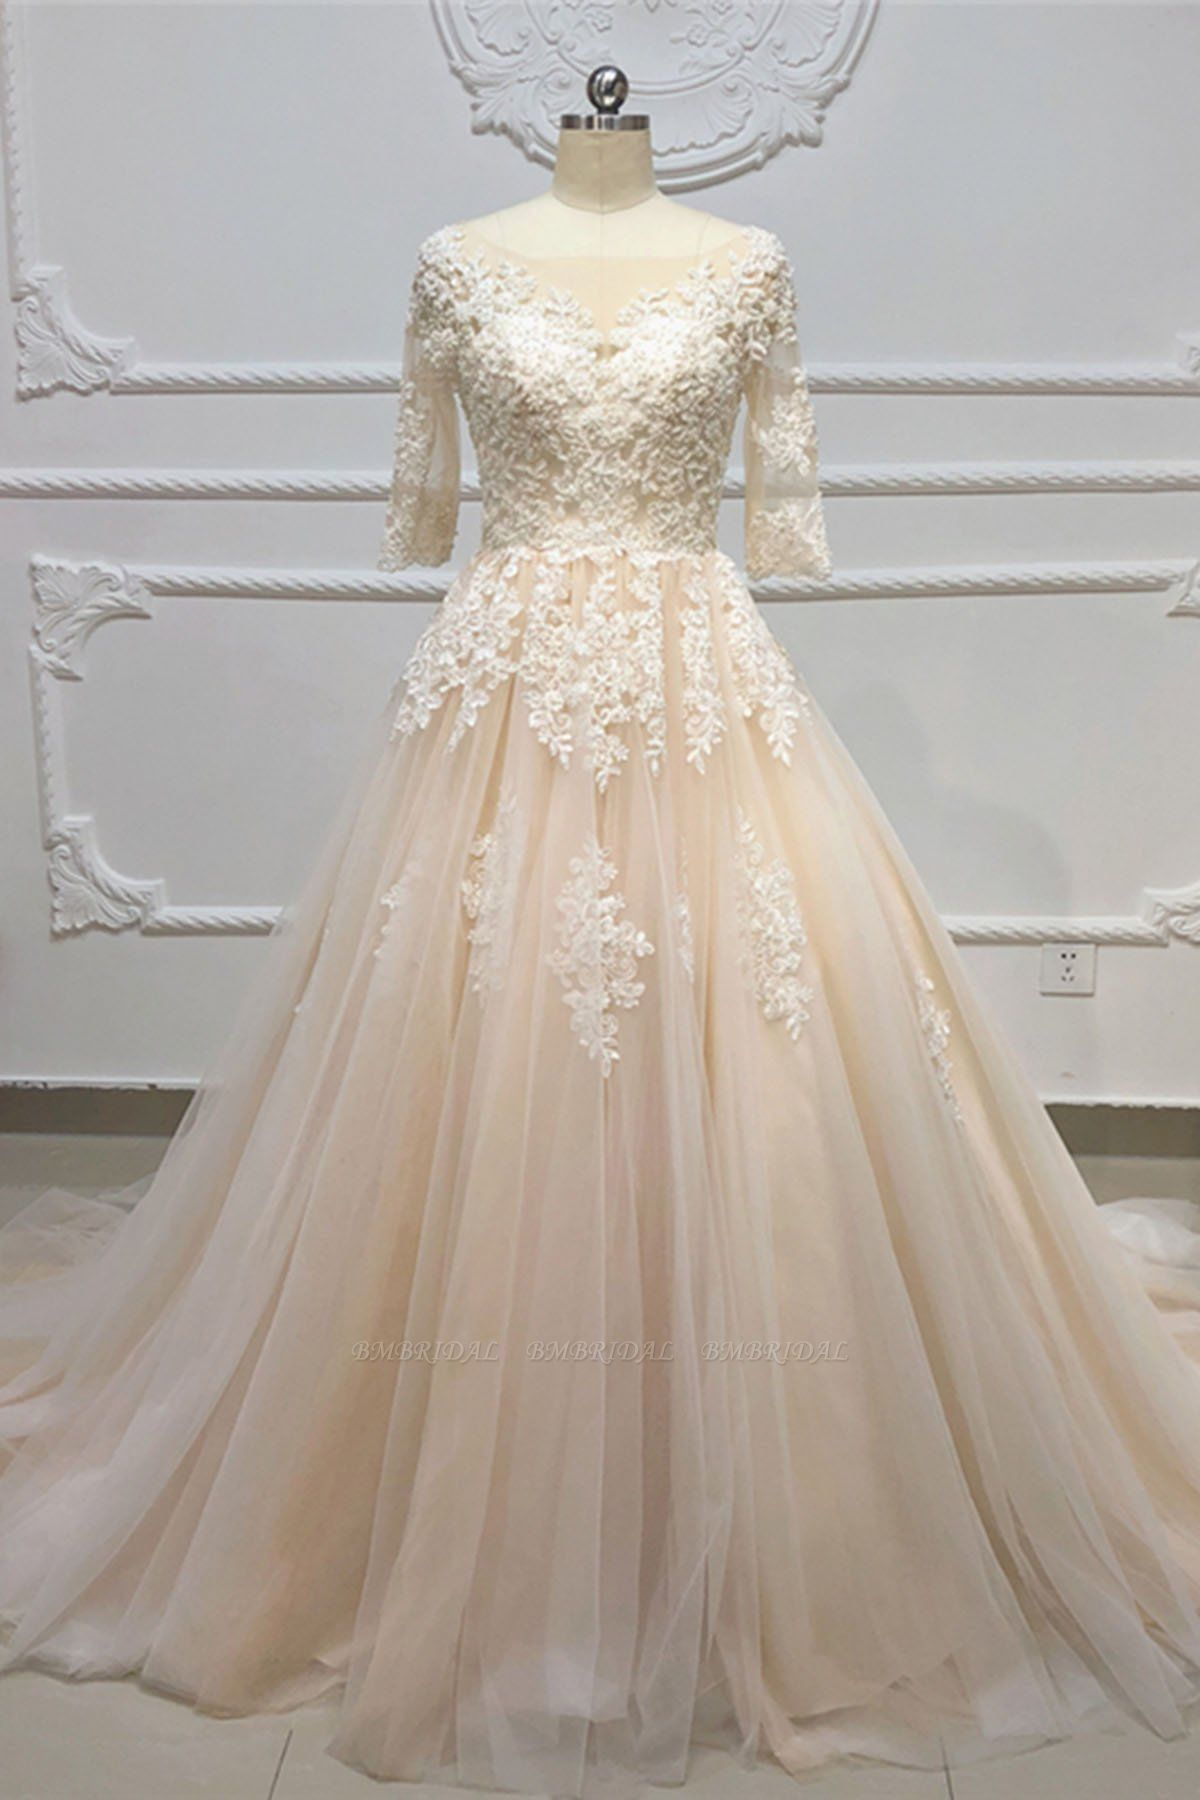 Gorgeous Champagne Tulle Half Sleeve Long Wedding Dress White Lace Applique Bridal Gowns On Sale